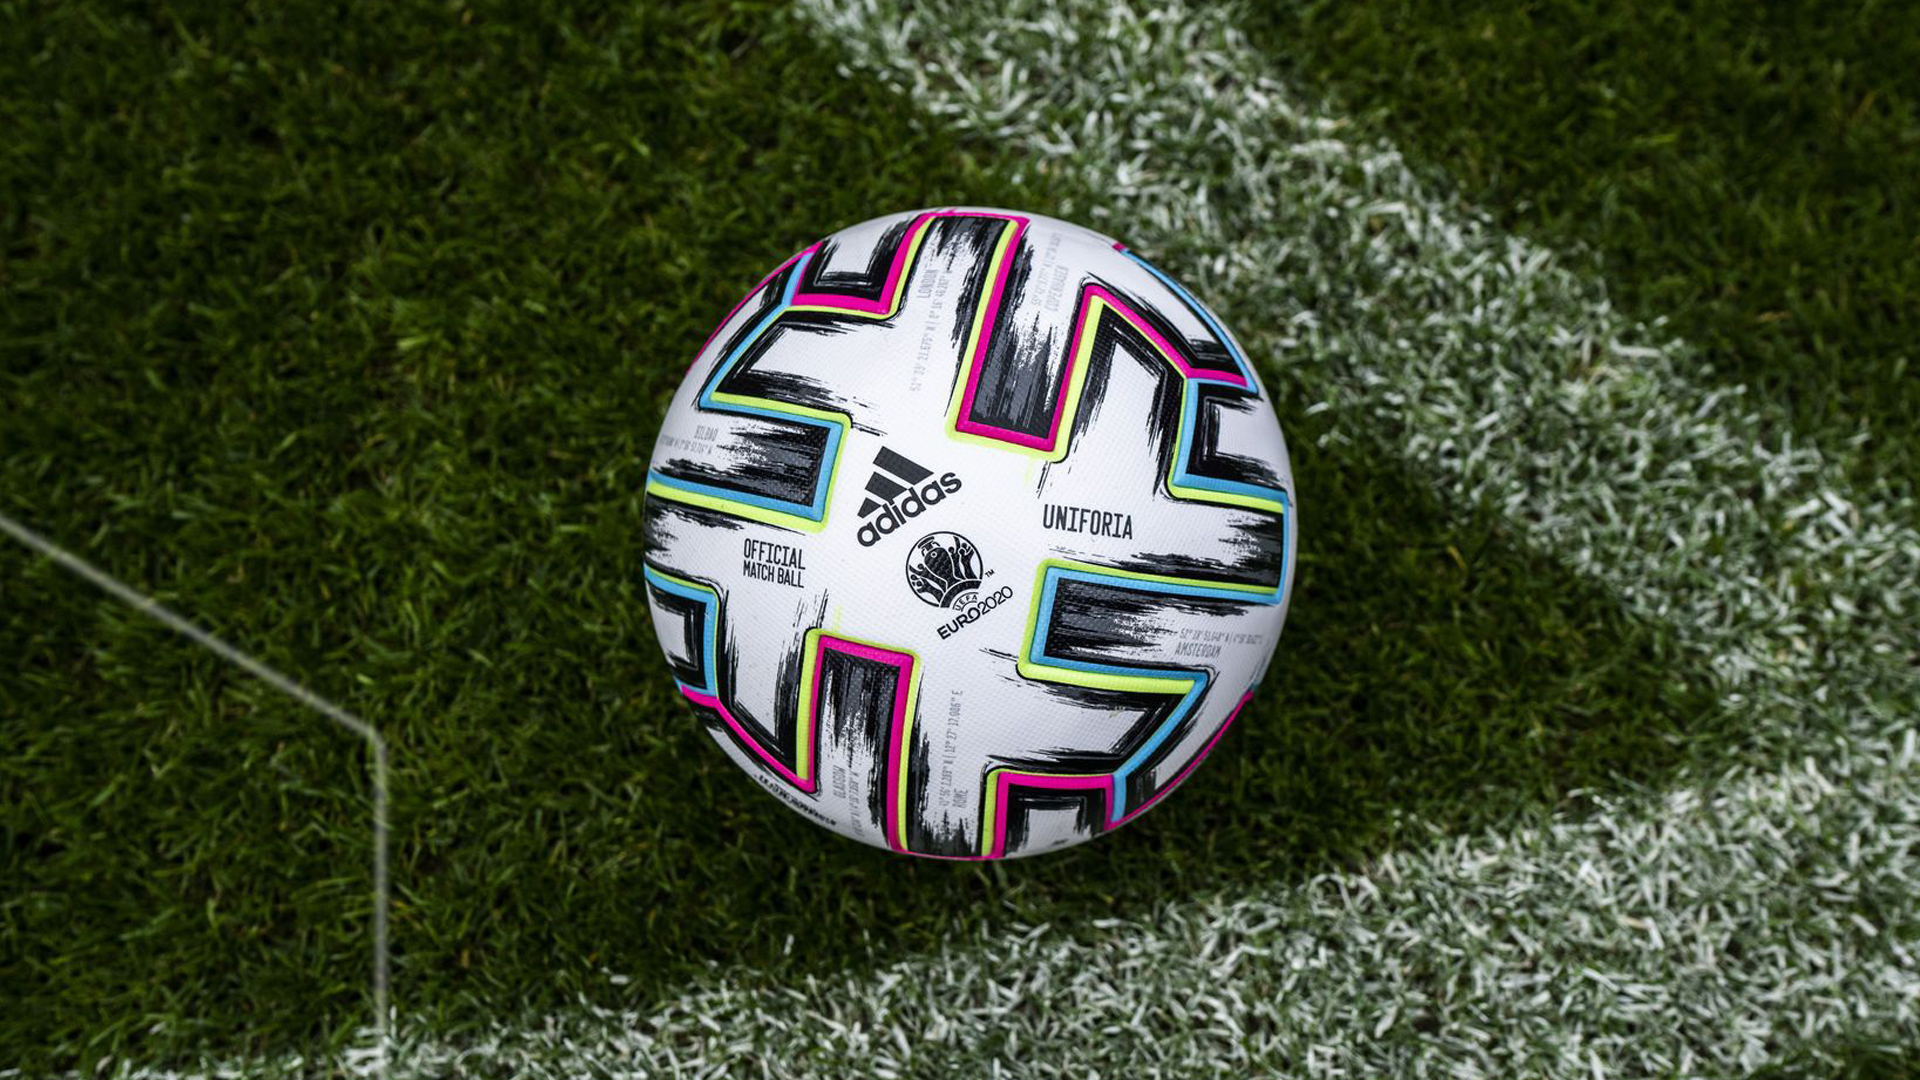 Calendrier De Match Euro 2020.Adidas And Uefa Unveil New Euro 2020 Football Which Will